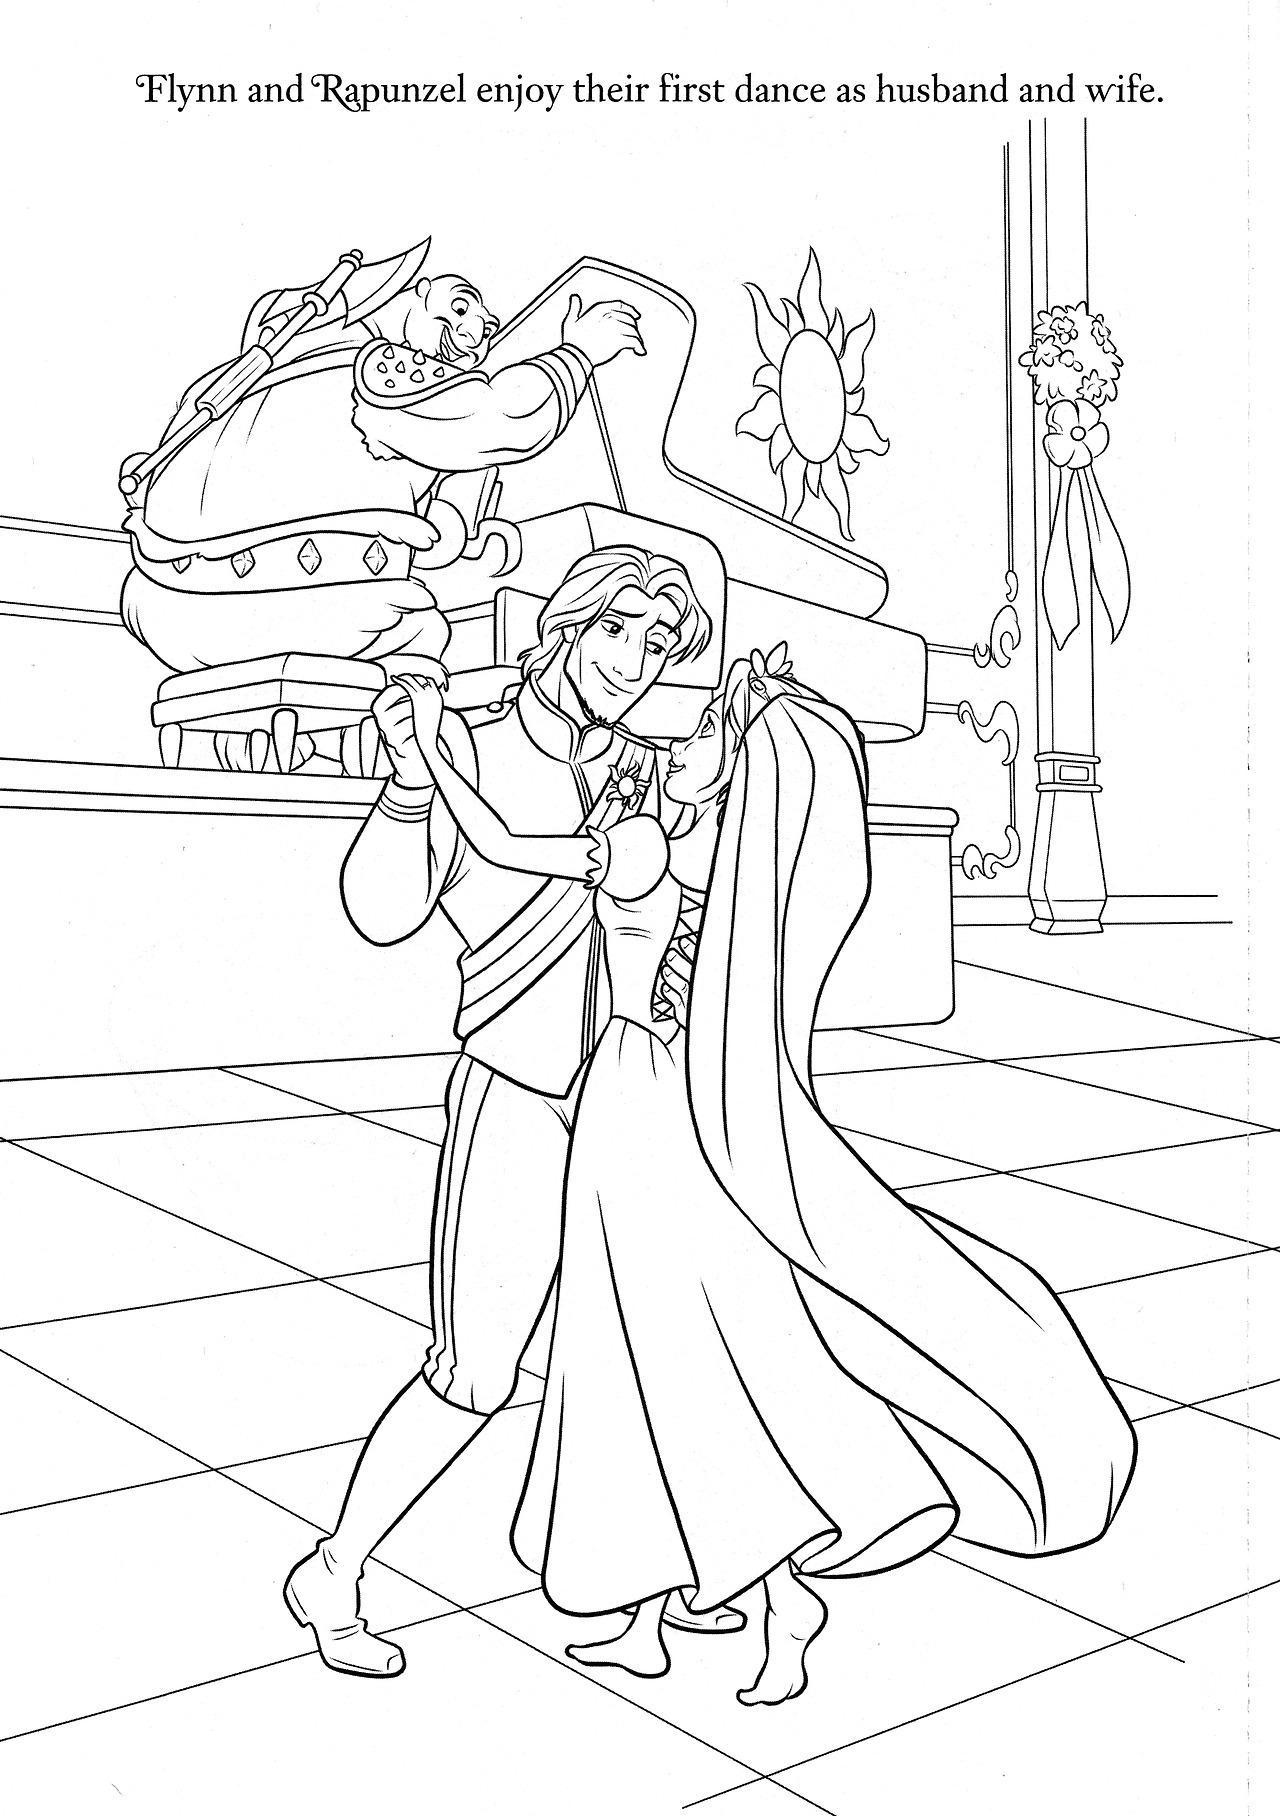 wedding day disney wedding coloring pages wedding wishes 14 by disneysexual via flickr belle beauty pages wedding day wedding disney coloring